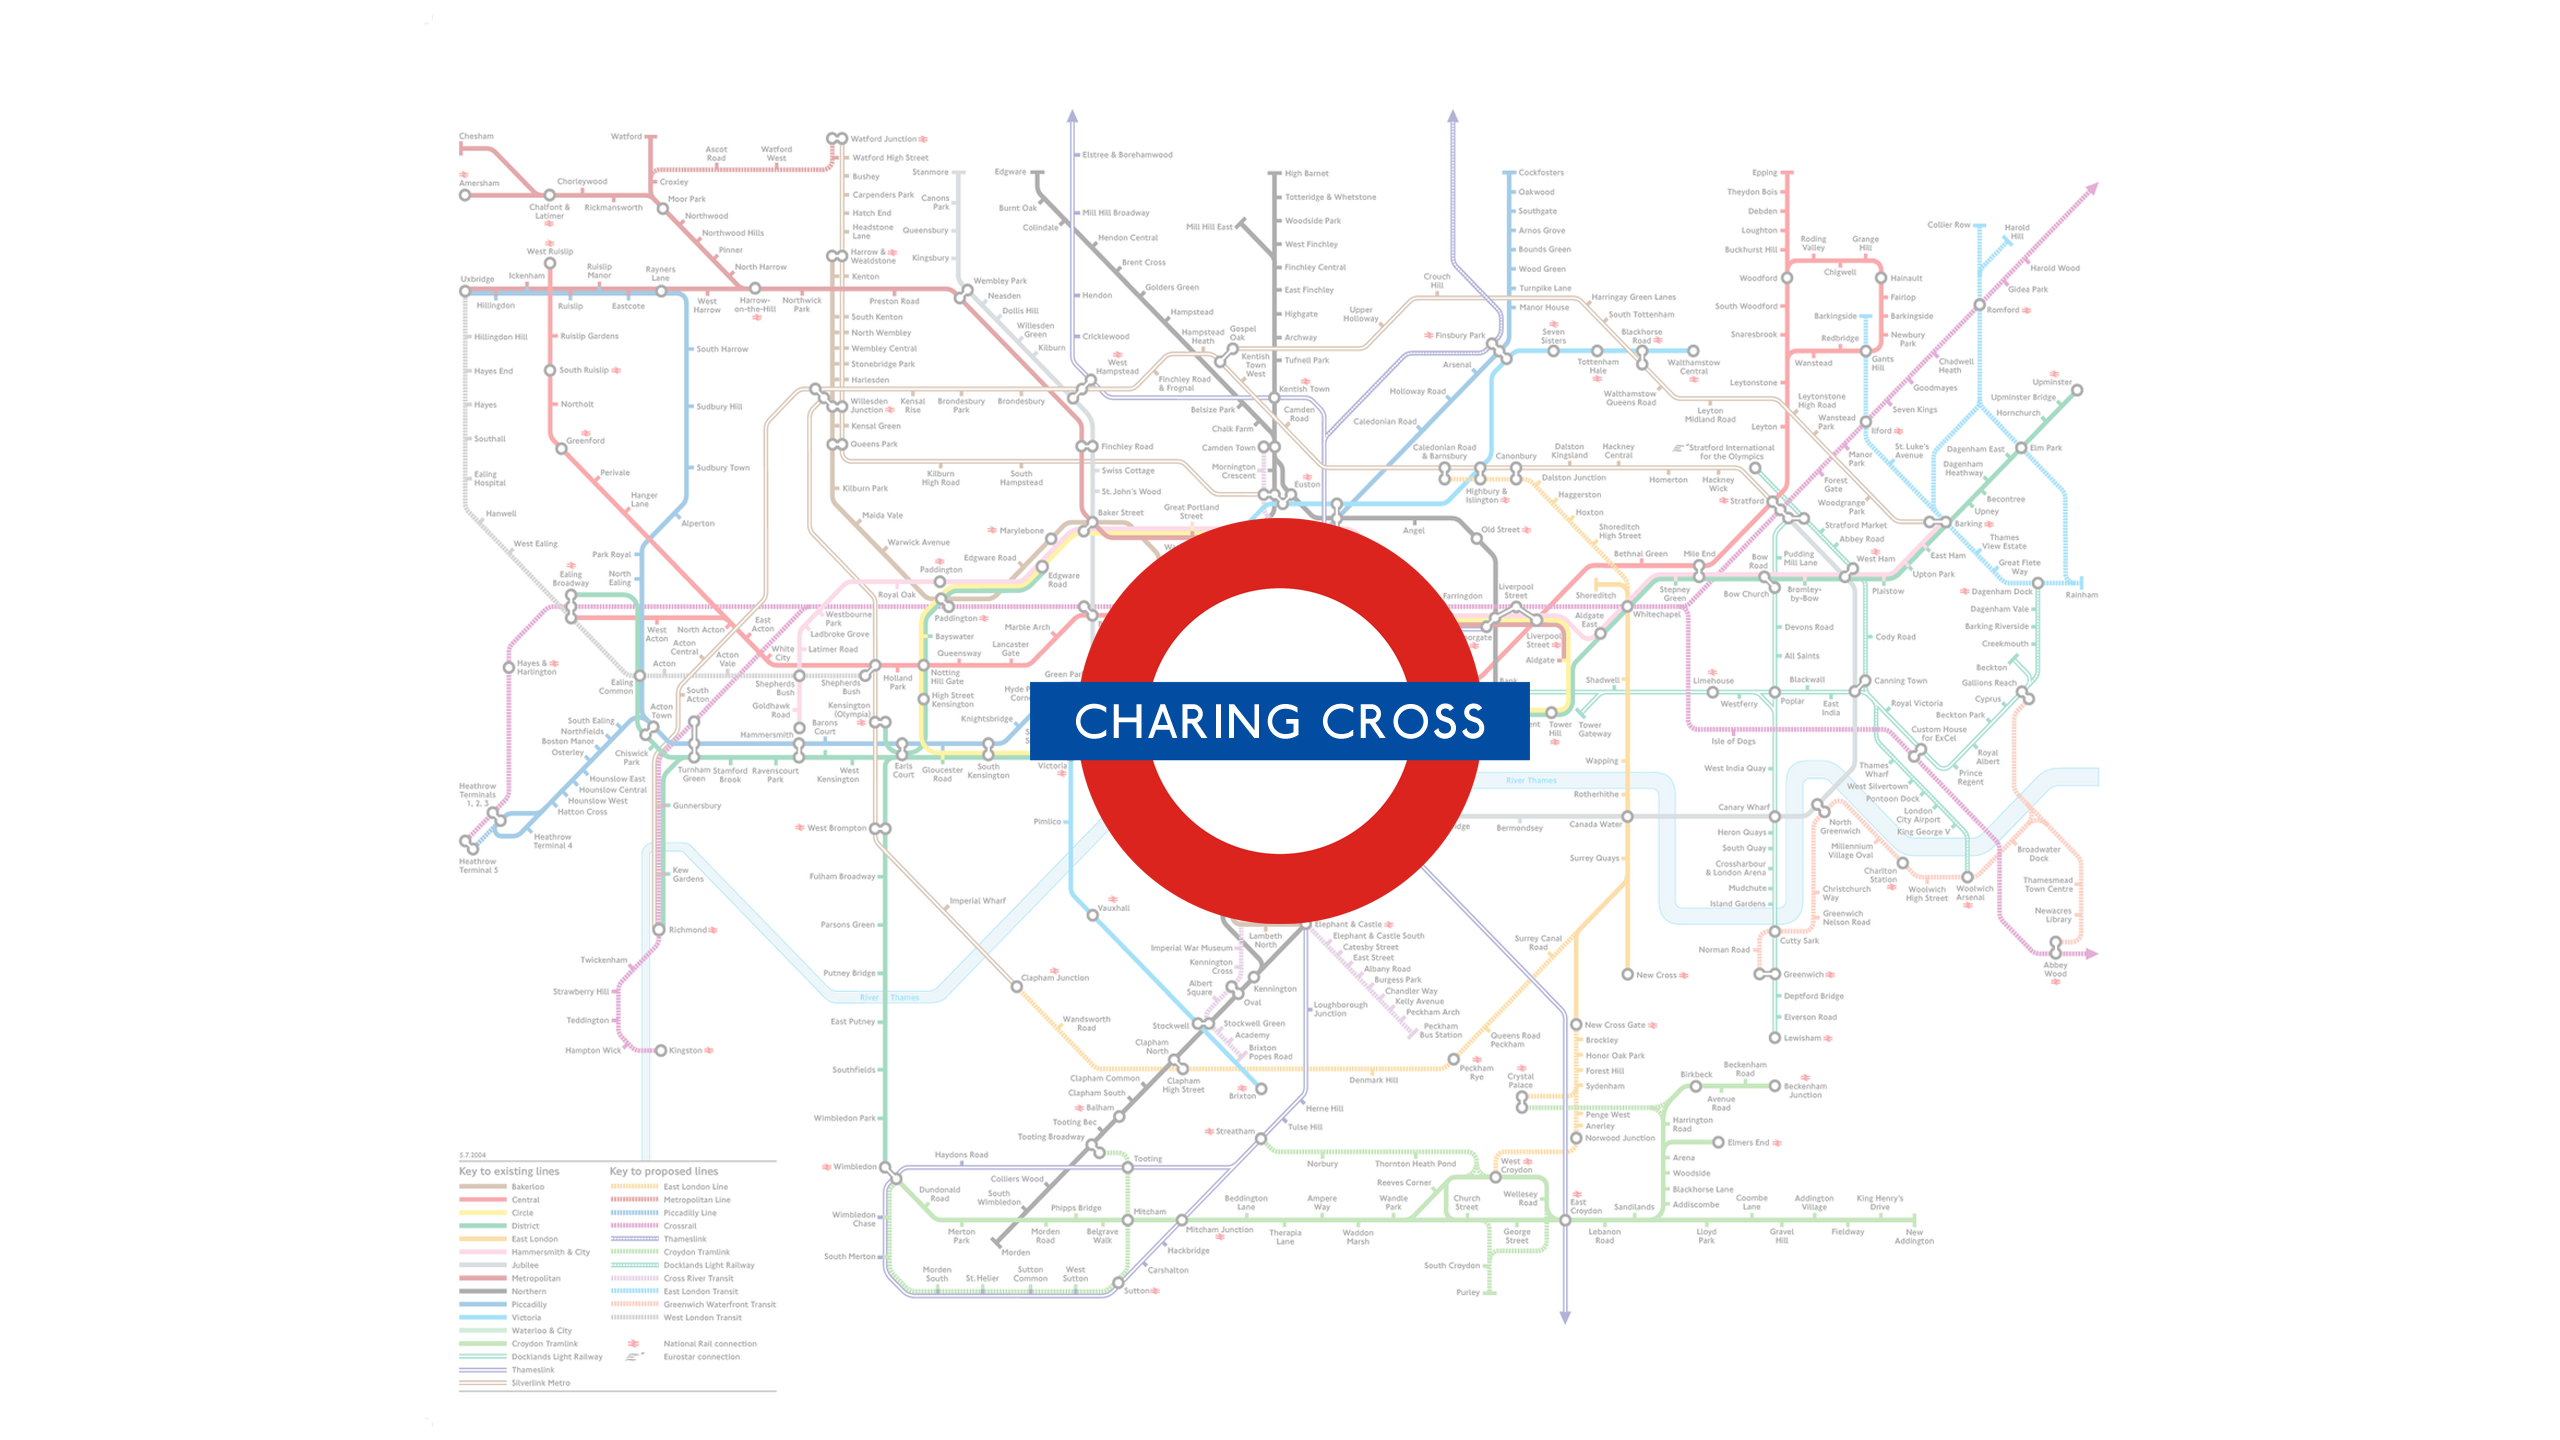 Charing Cross (Map)